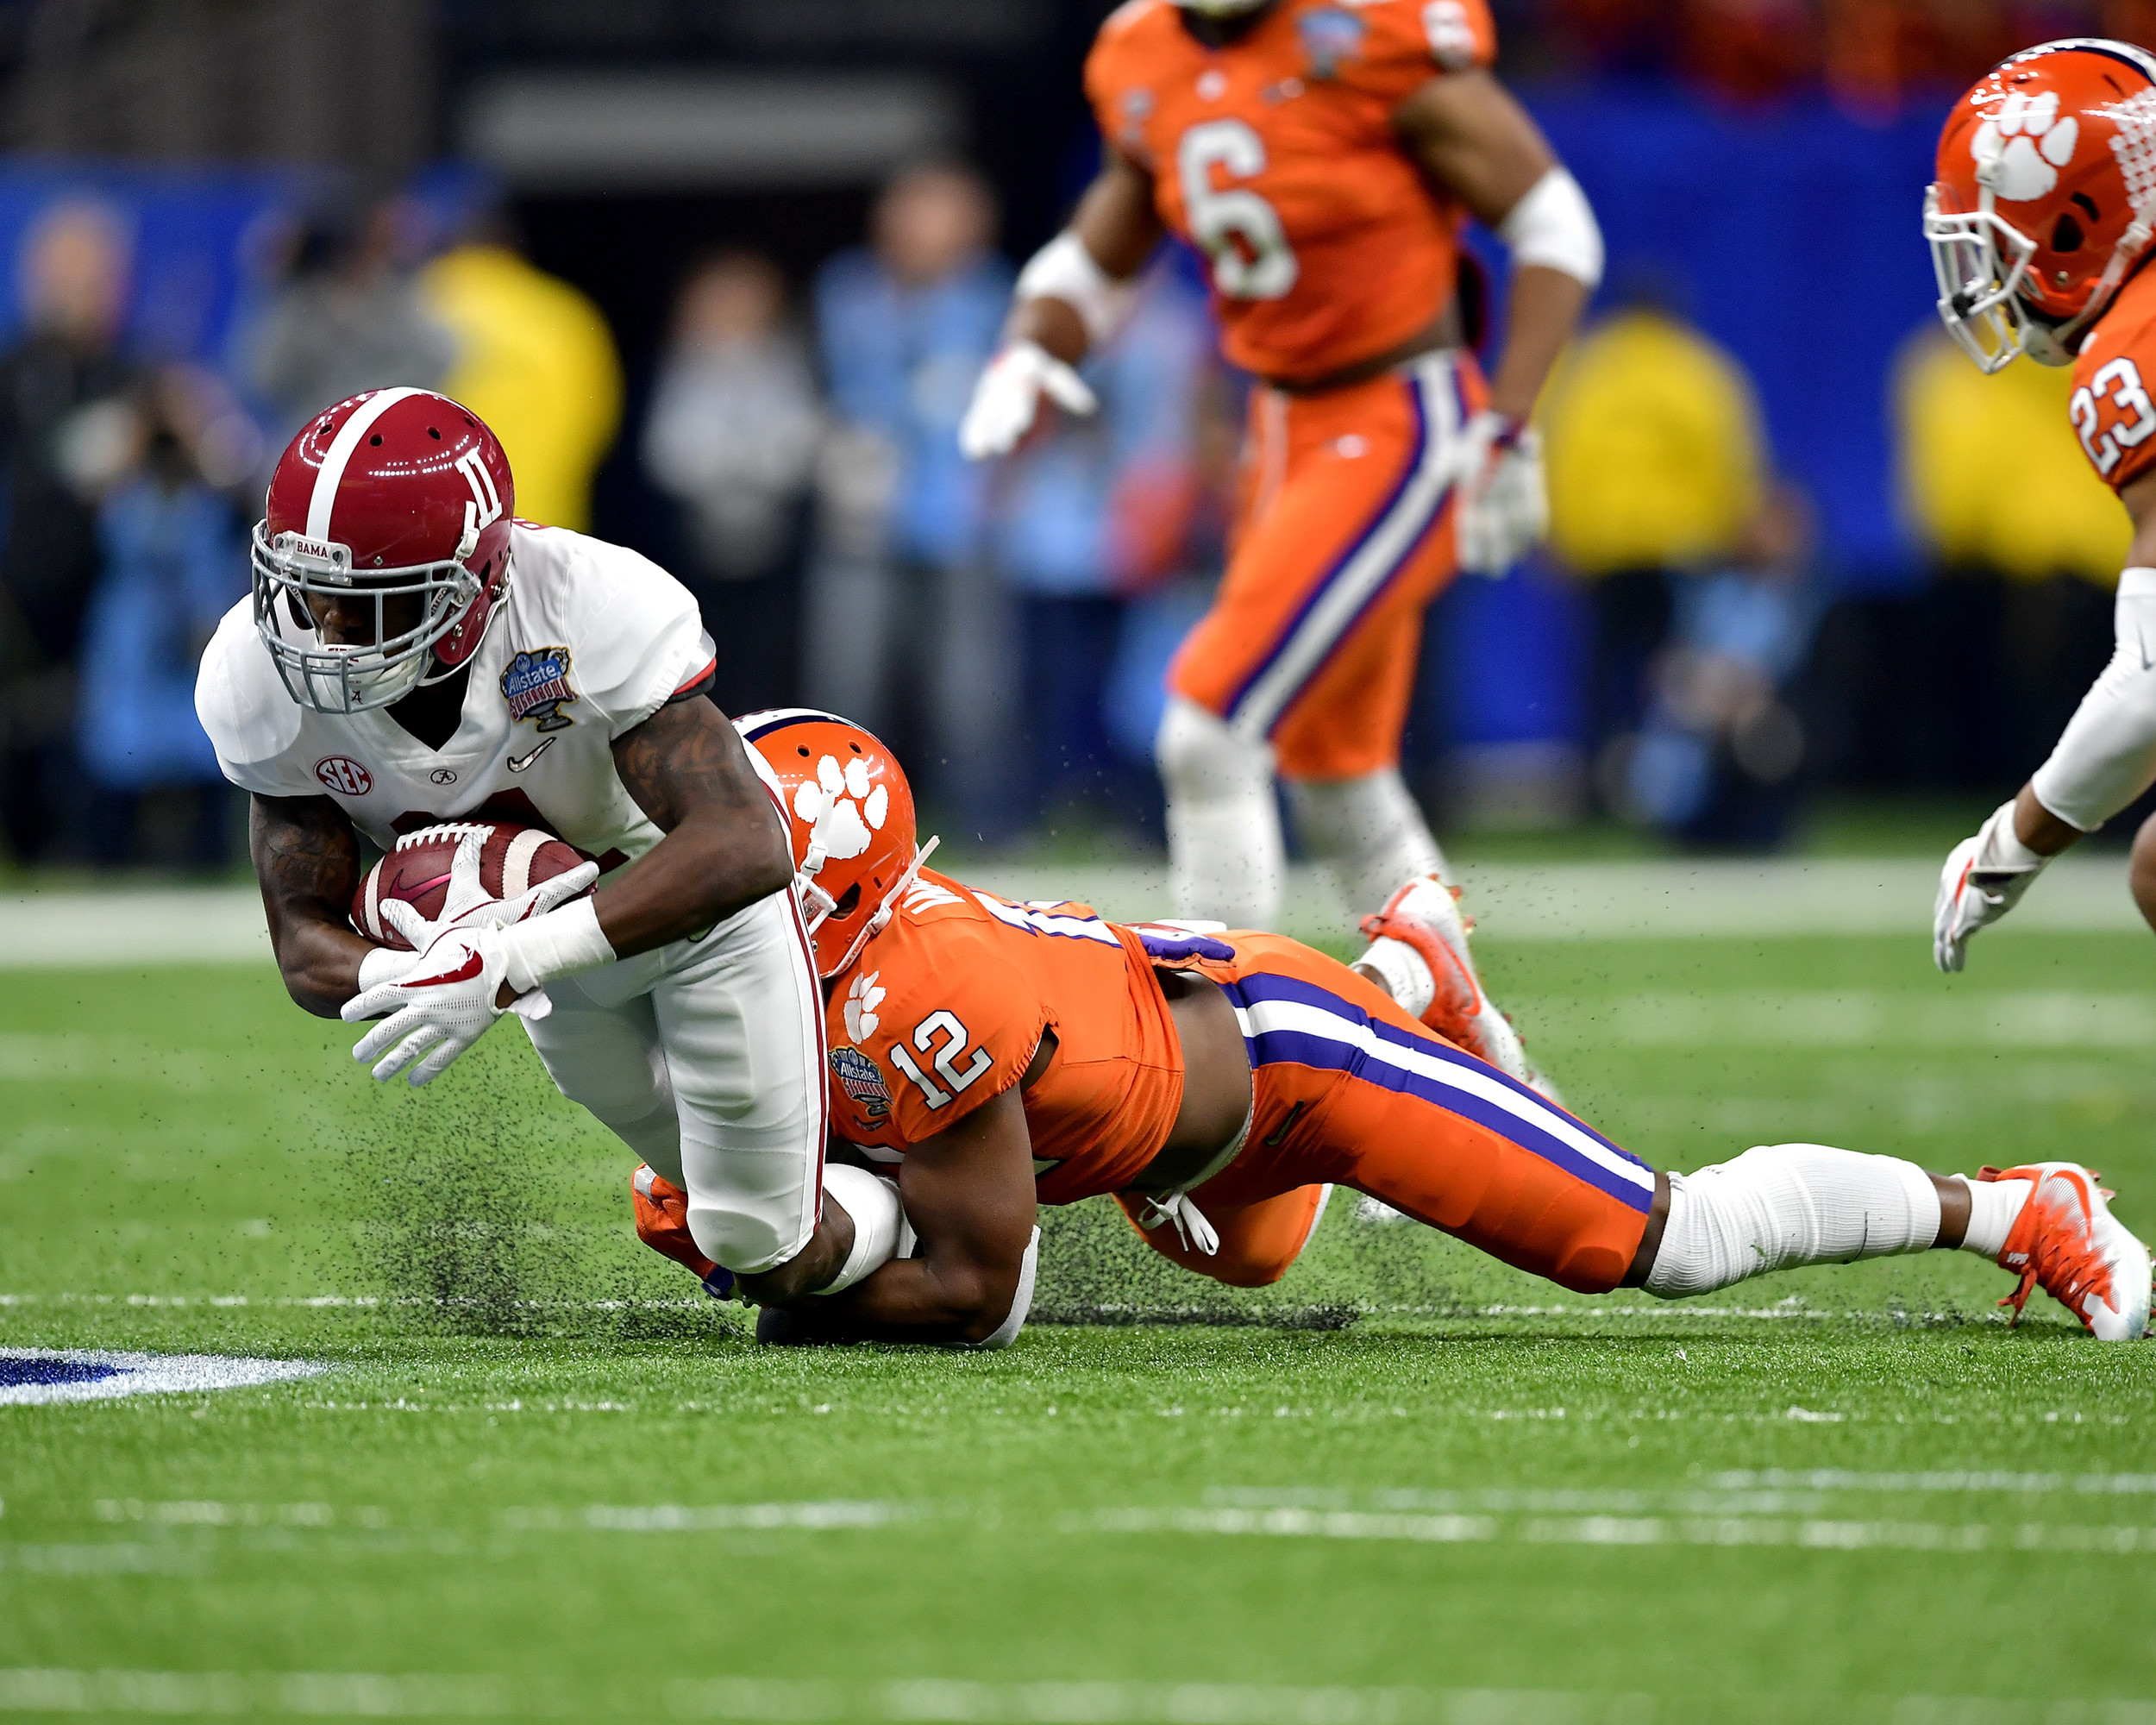 Alabama Crimson Tide wide receiver Henry Ruggs III (11) is tackled after a reception in the first half of the 2018 AllState Sugar Bowl on Jan. 1, 2018, at the Mercedes-Benz SuperDome in New Orleans, La. Alabama won the game 24-6. (Photo by Lee Walls)